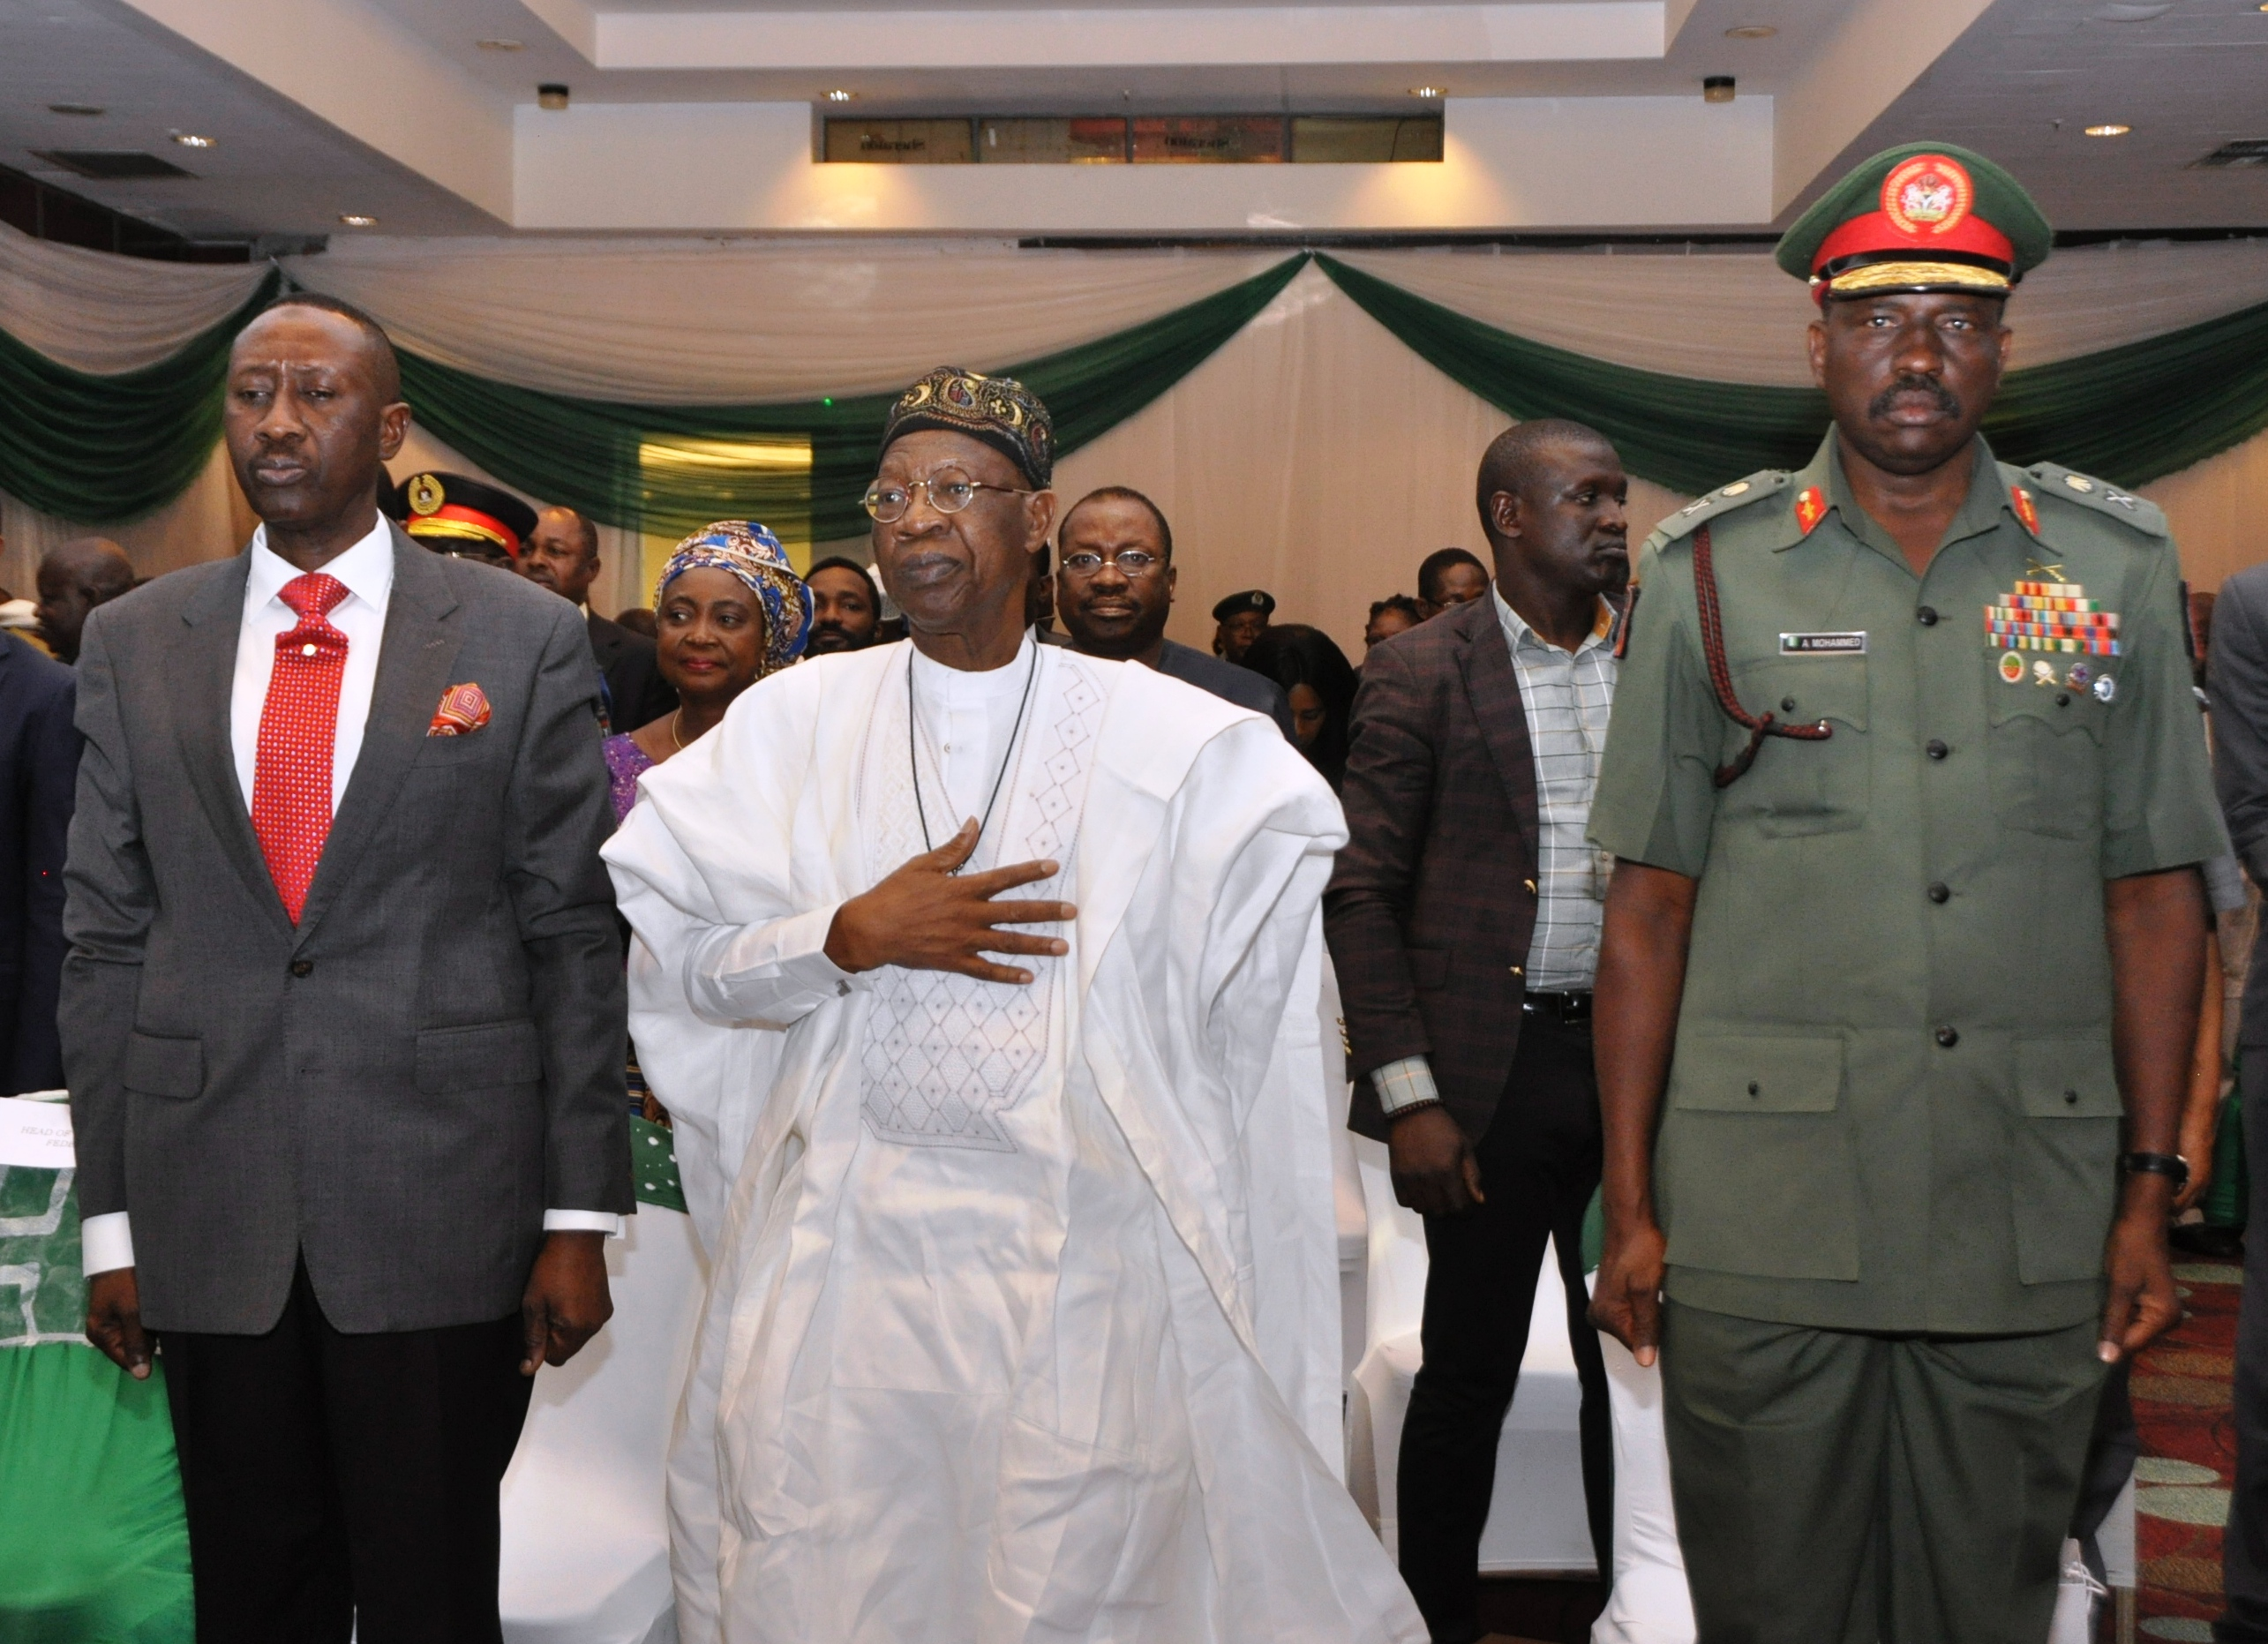 Buhari administration unveils new initiatives to counter violent extremism